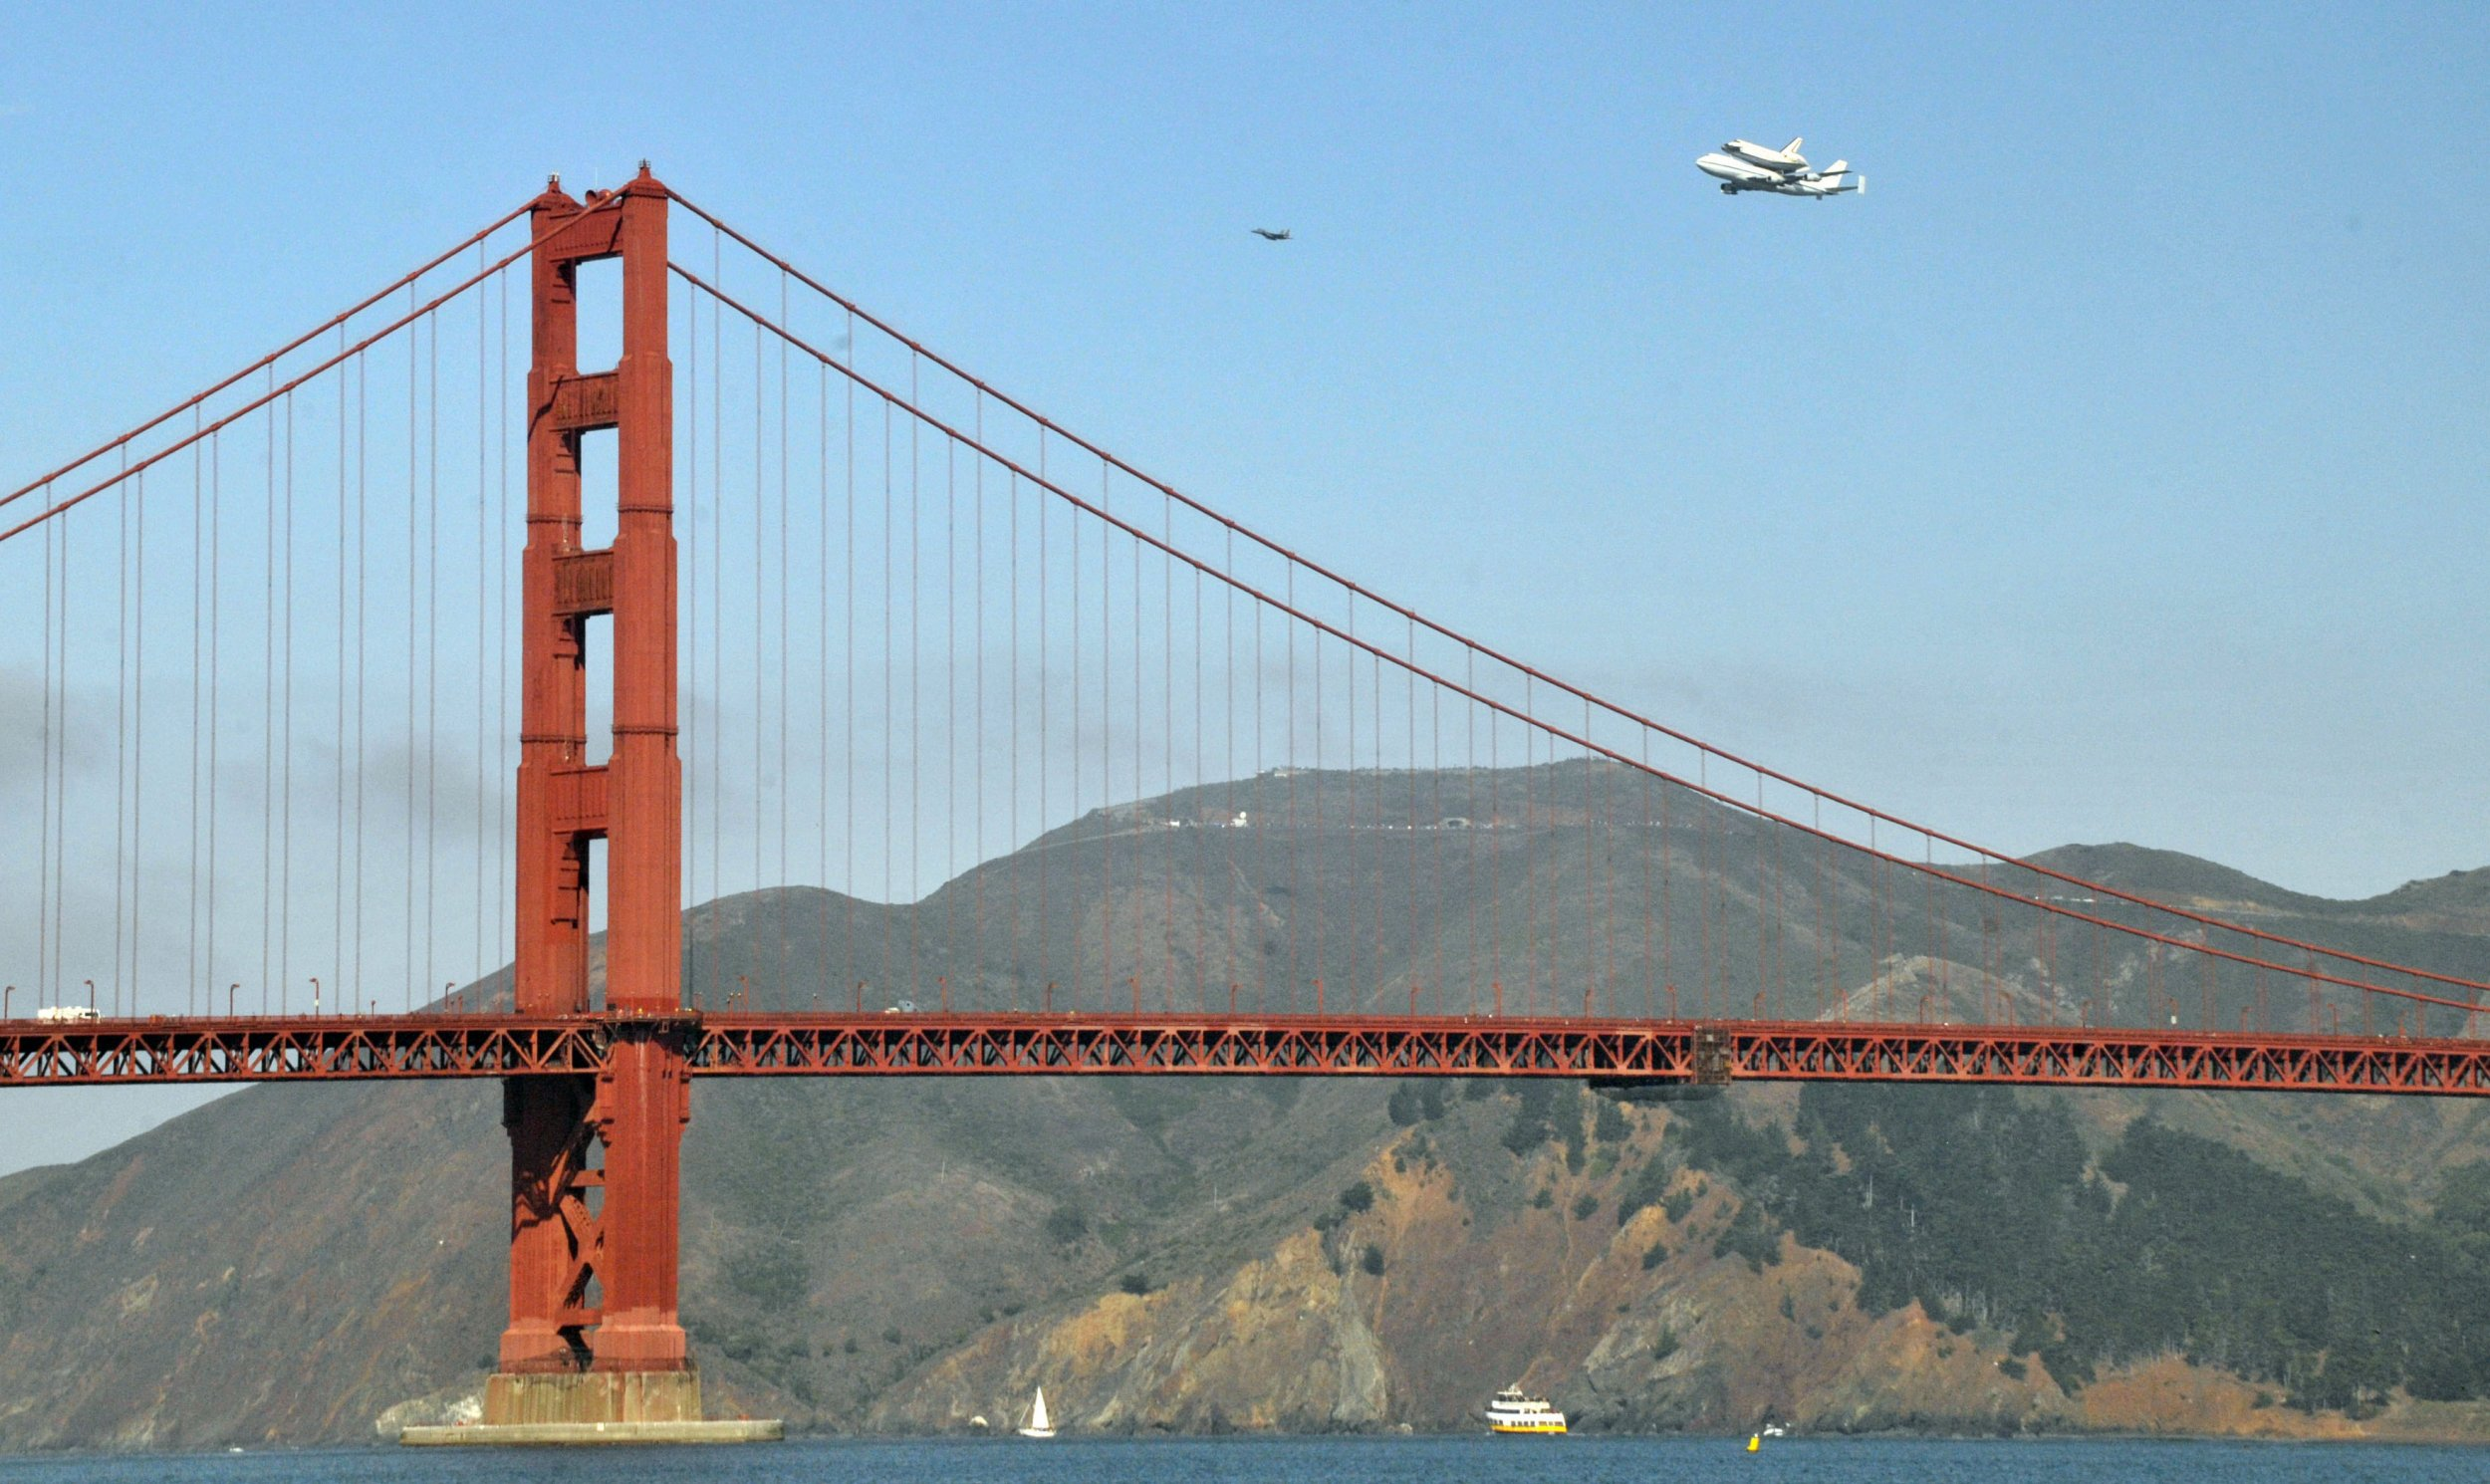 The space shuttle Endeavour flies past the Golden Gate Bridge in San Francisco on the back of a 747 en route to Los Angeles International Airport September 21, 2012.